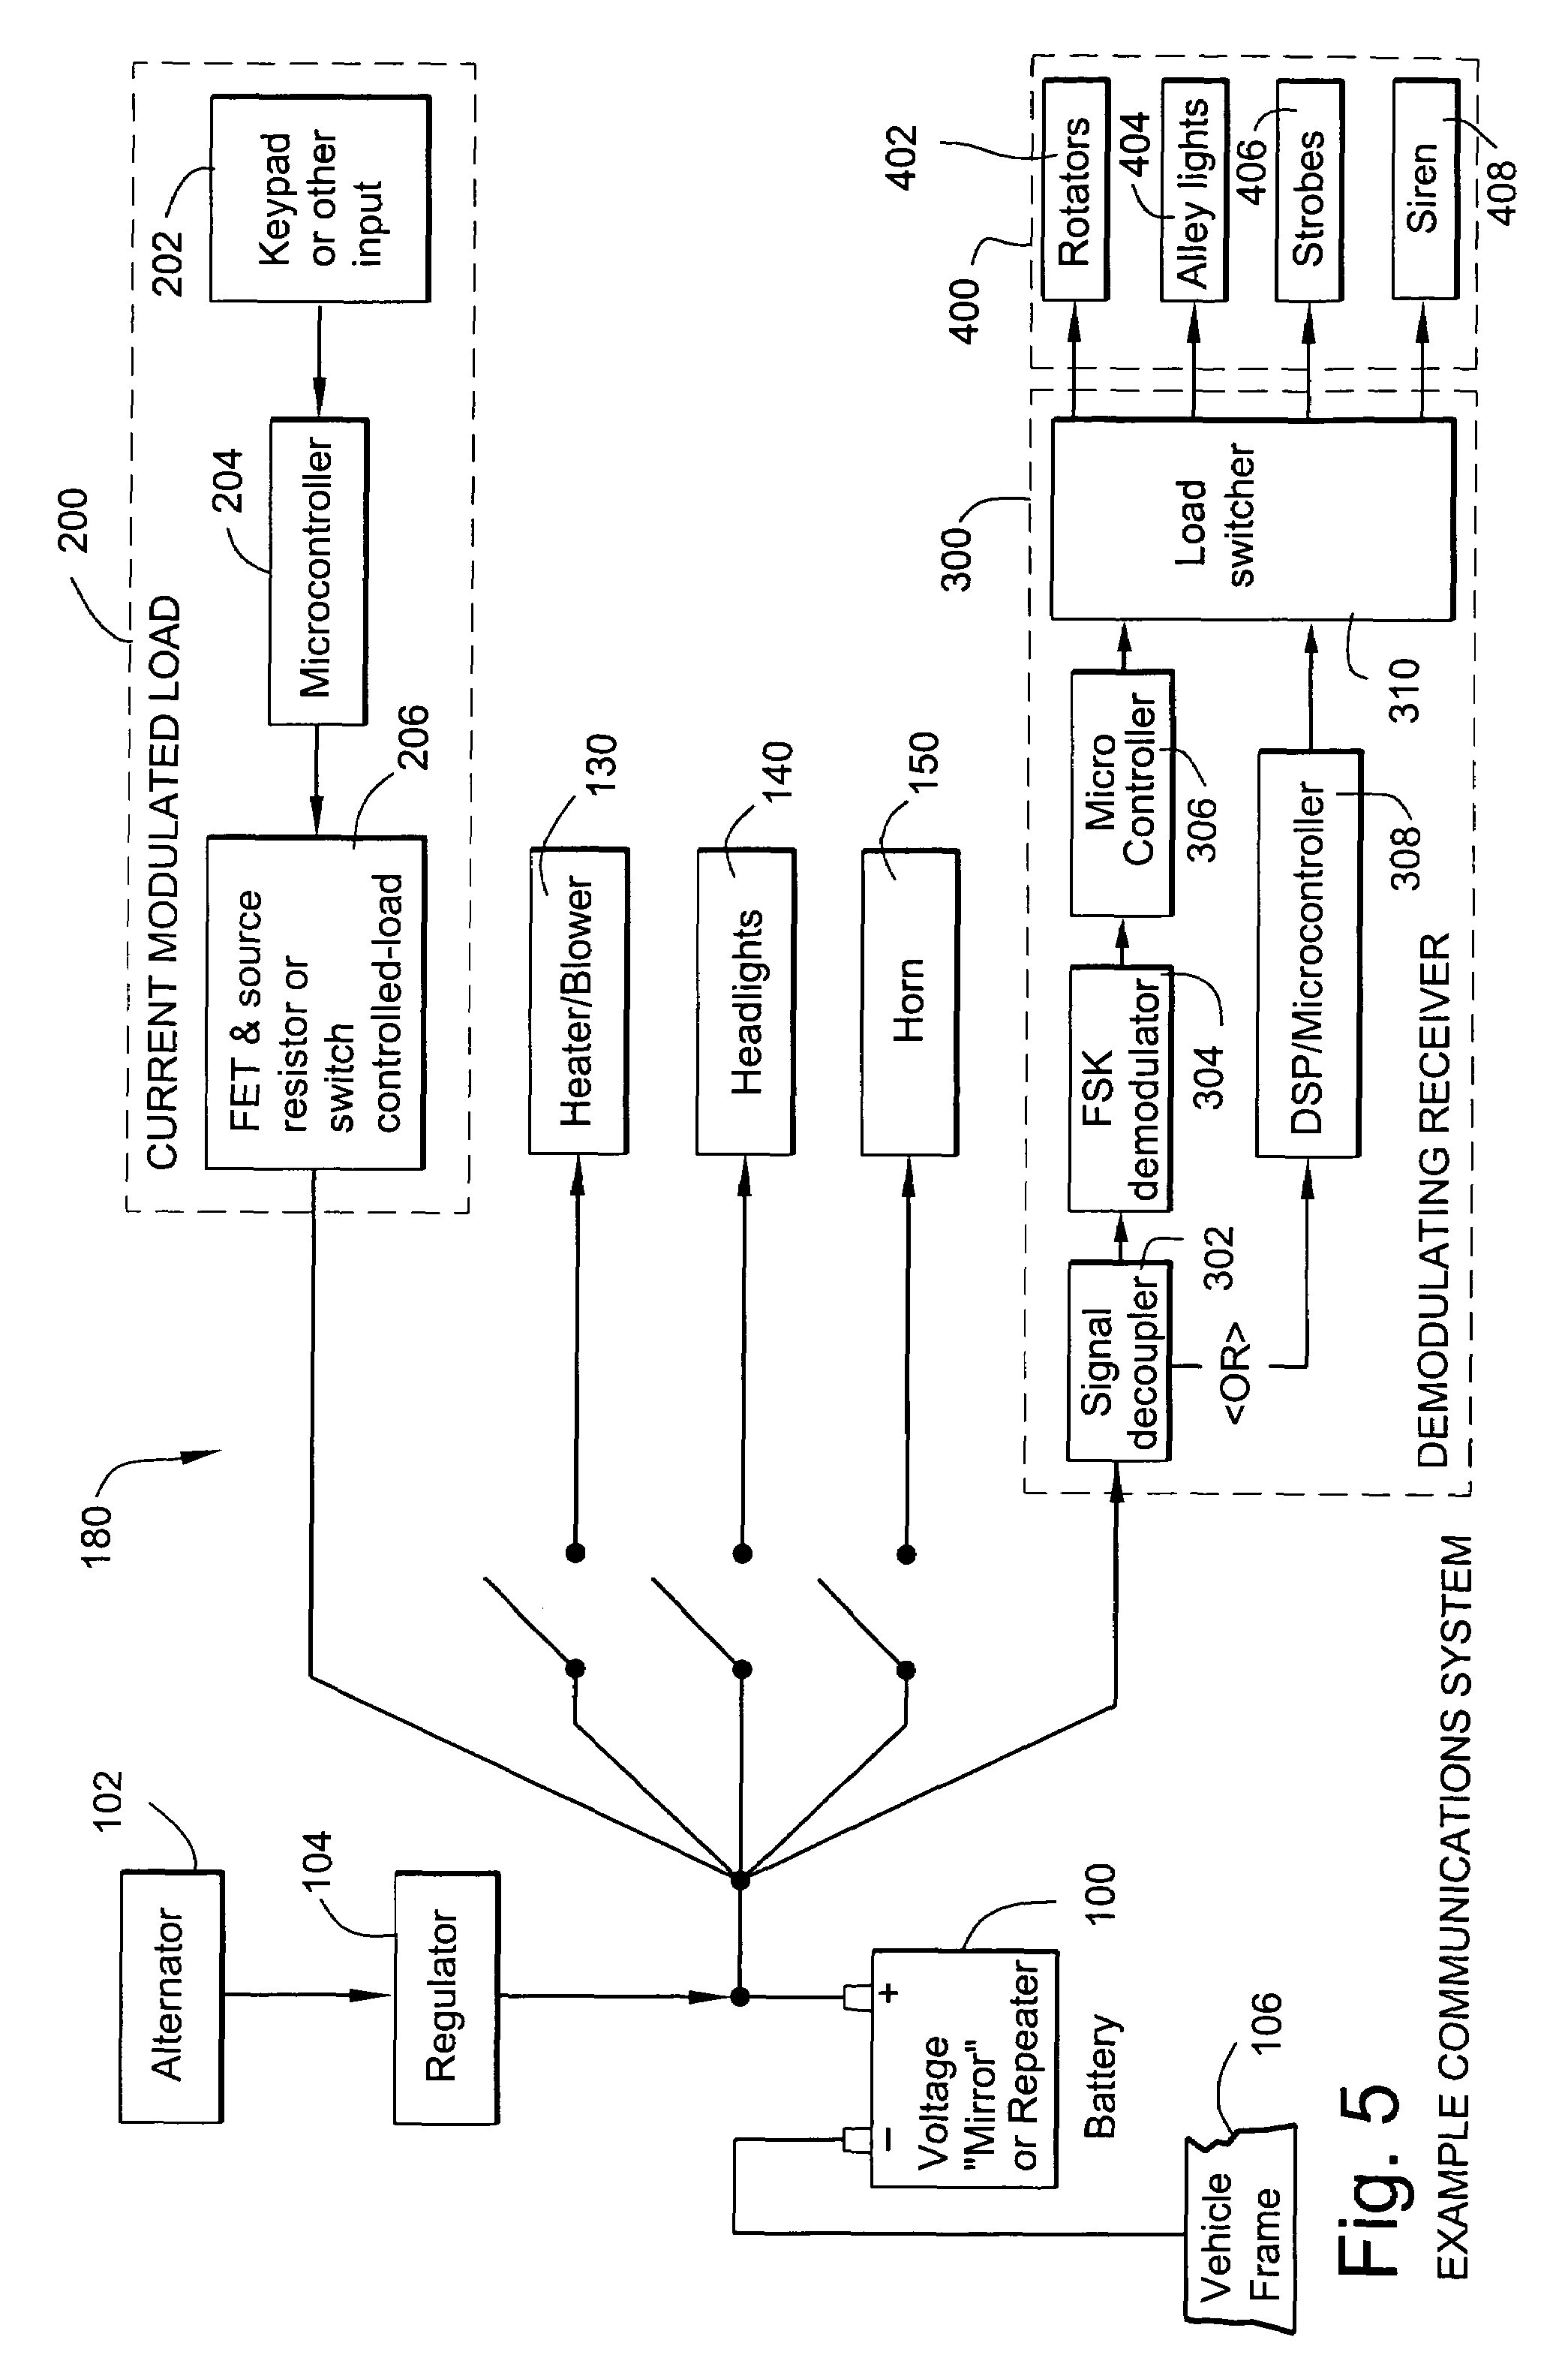 Magnificent Code 3 Supervisor Wiring Diagram Gallery Electrical